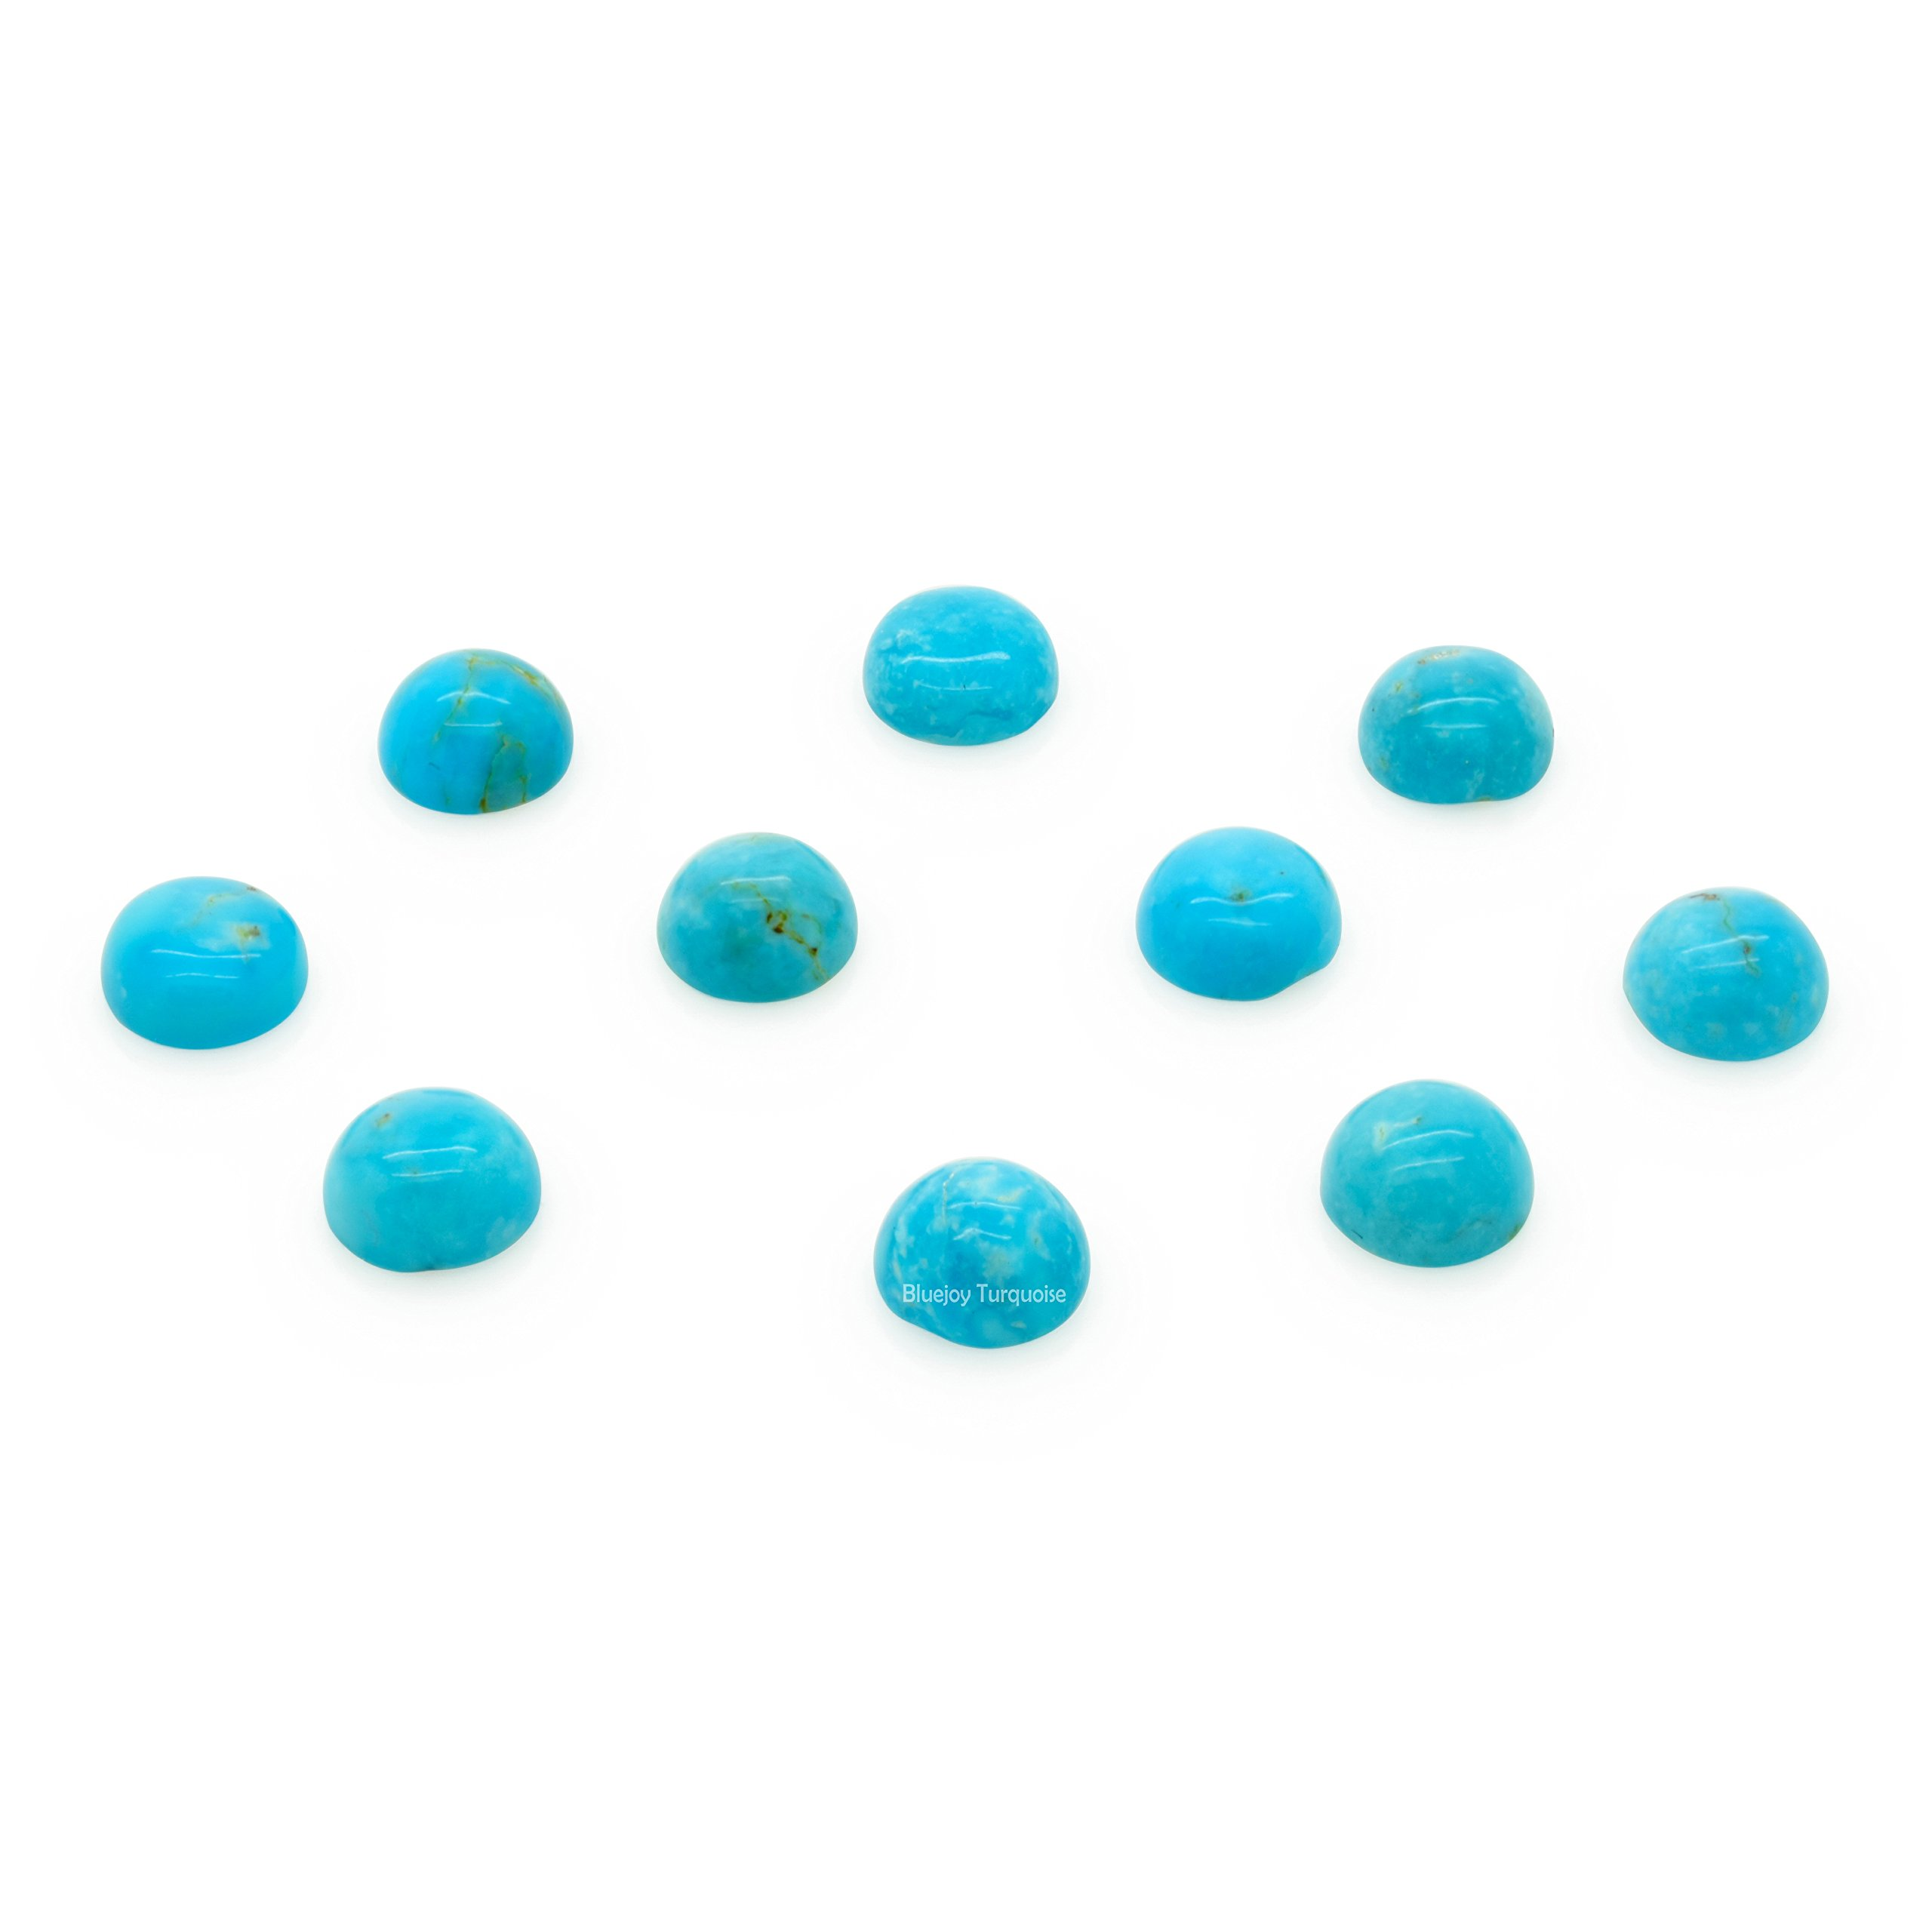 Bluejoy Genuine Natural American Turquoise Calibrated Cabochon - 6mm Round (6-Stones Pack)